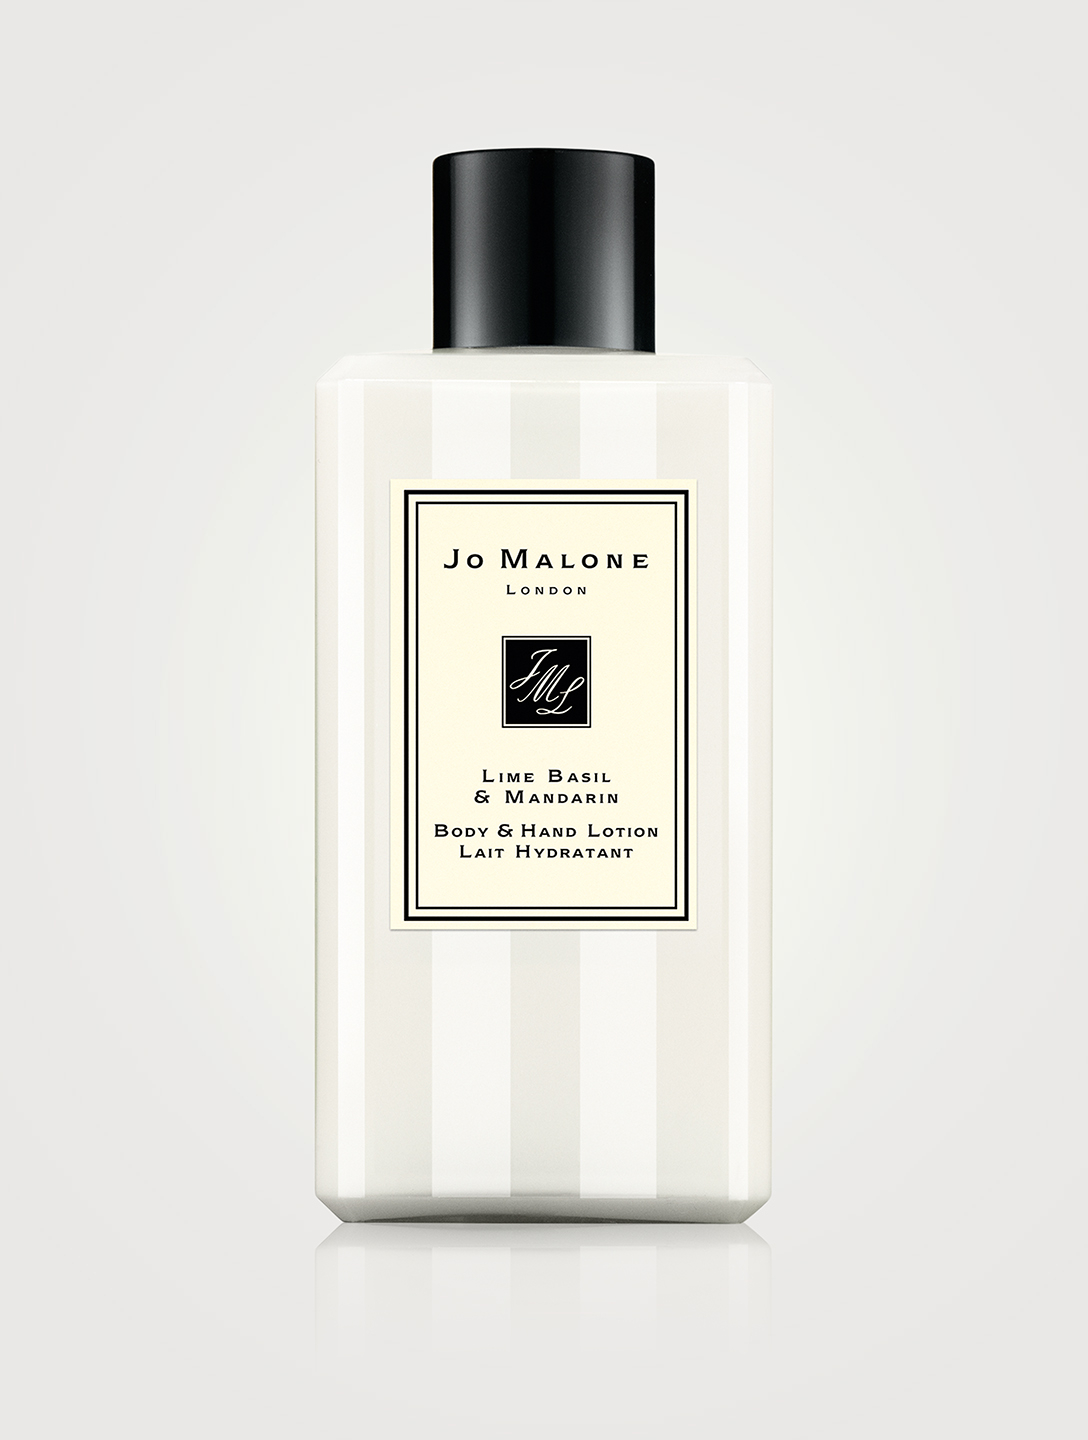 JO MALONE LONDON Lime Basil & Mandarin Body & Hand Lotion Beauty